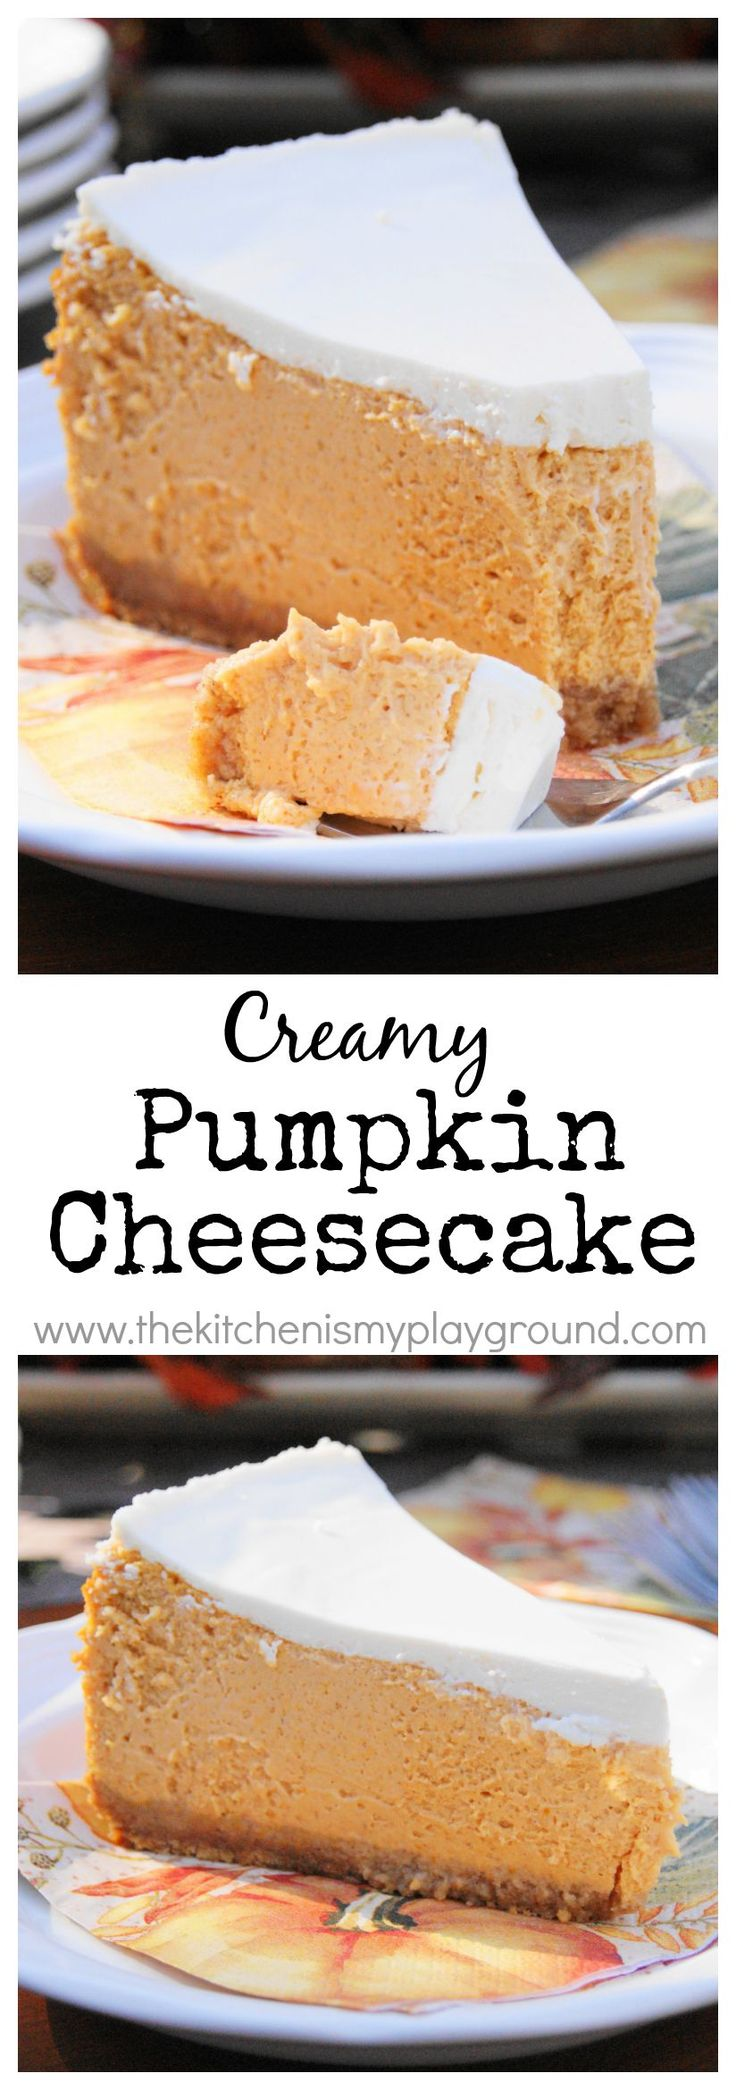 1000 Ideas About Pumpkin Cheesecake On Pinterest Cheesecake Pumpkin Pies And Pumpkin Spice